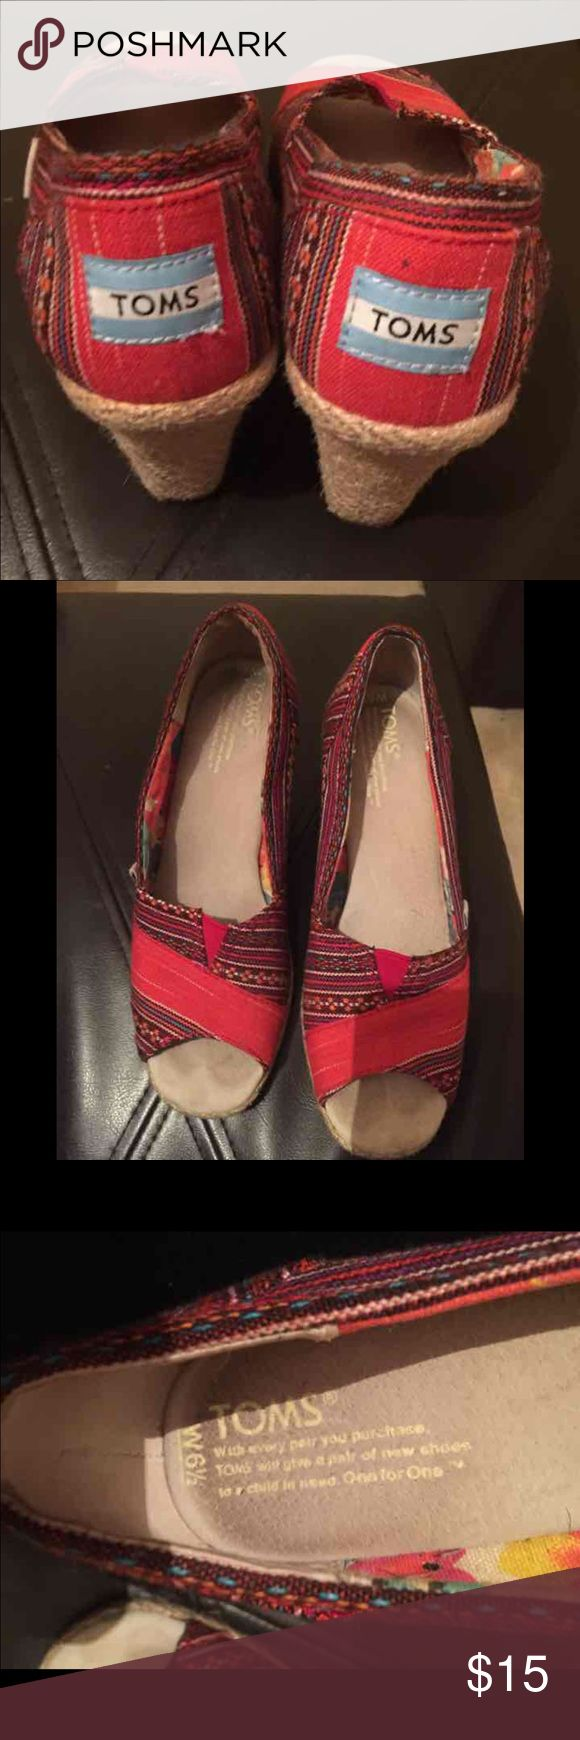 Multi Color Toms Wedges Tom Wedges, size 6.5, red/ multi colors, great condition TOMS Shoes Wedges